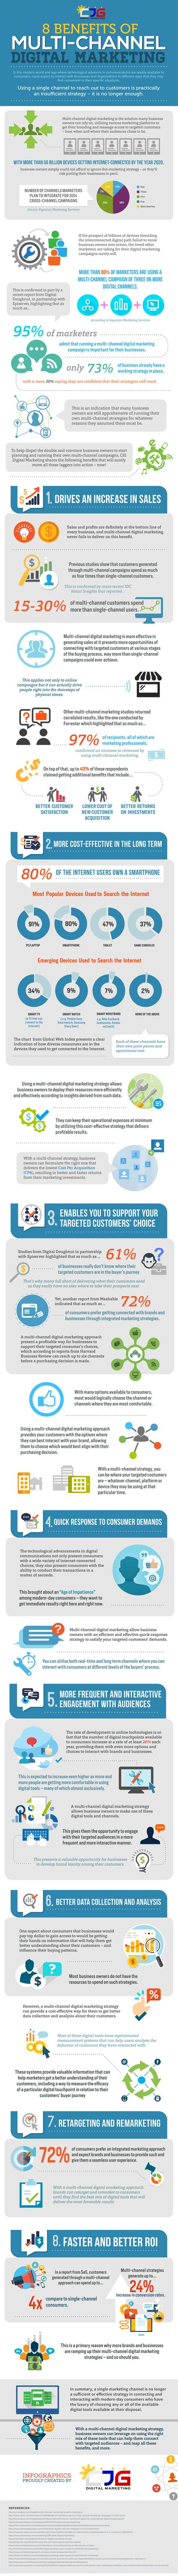 8 Benefits of Multi-Channel Digital Marketing [Infographic]